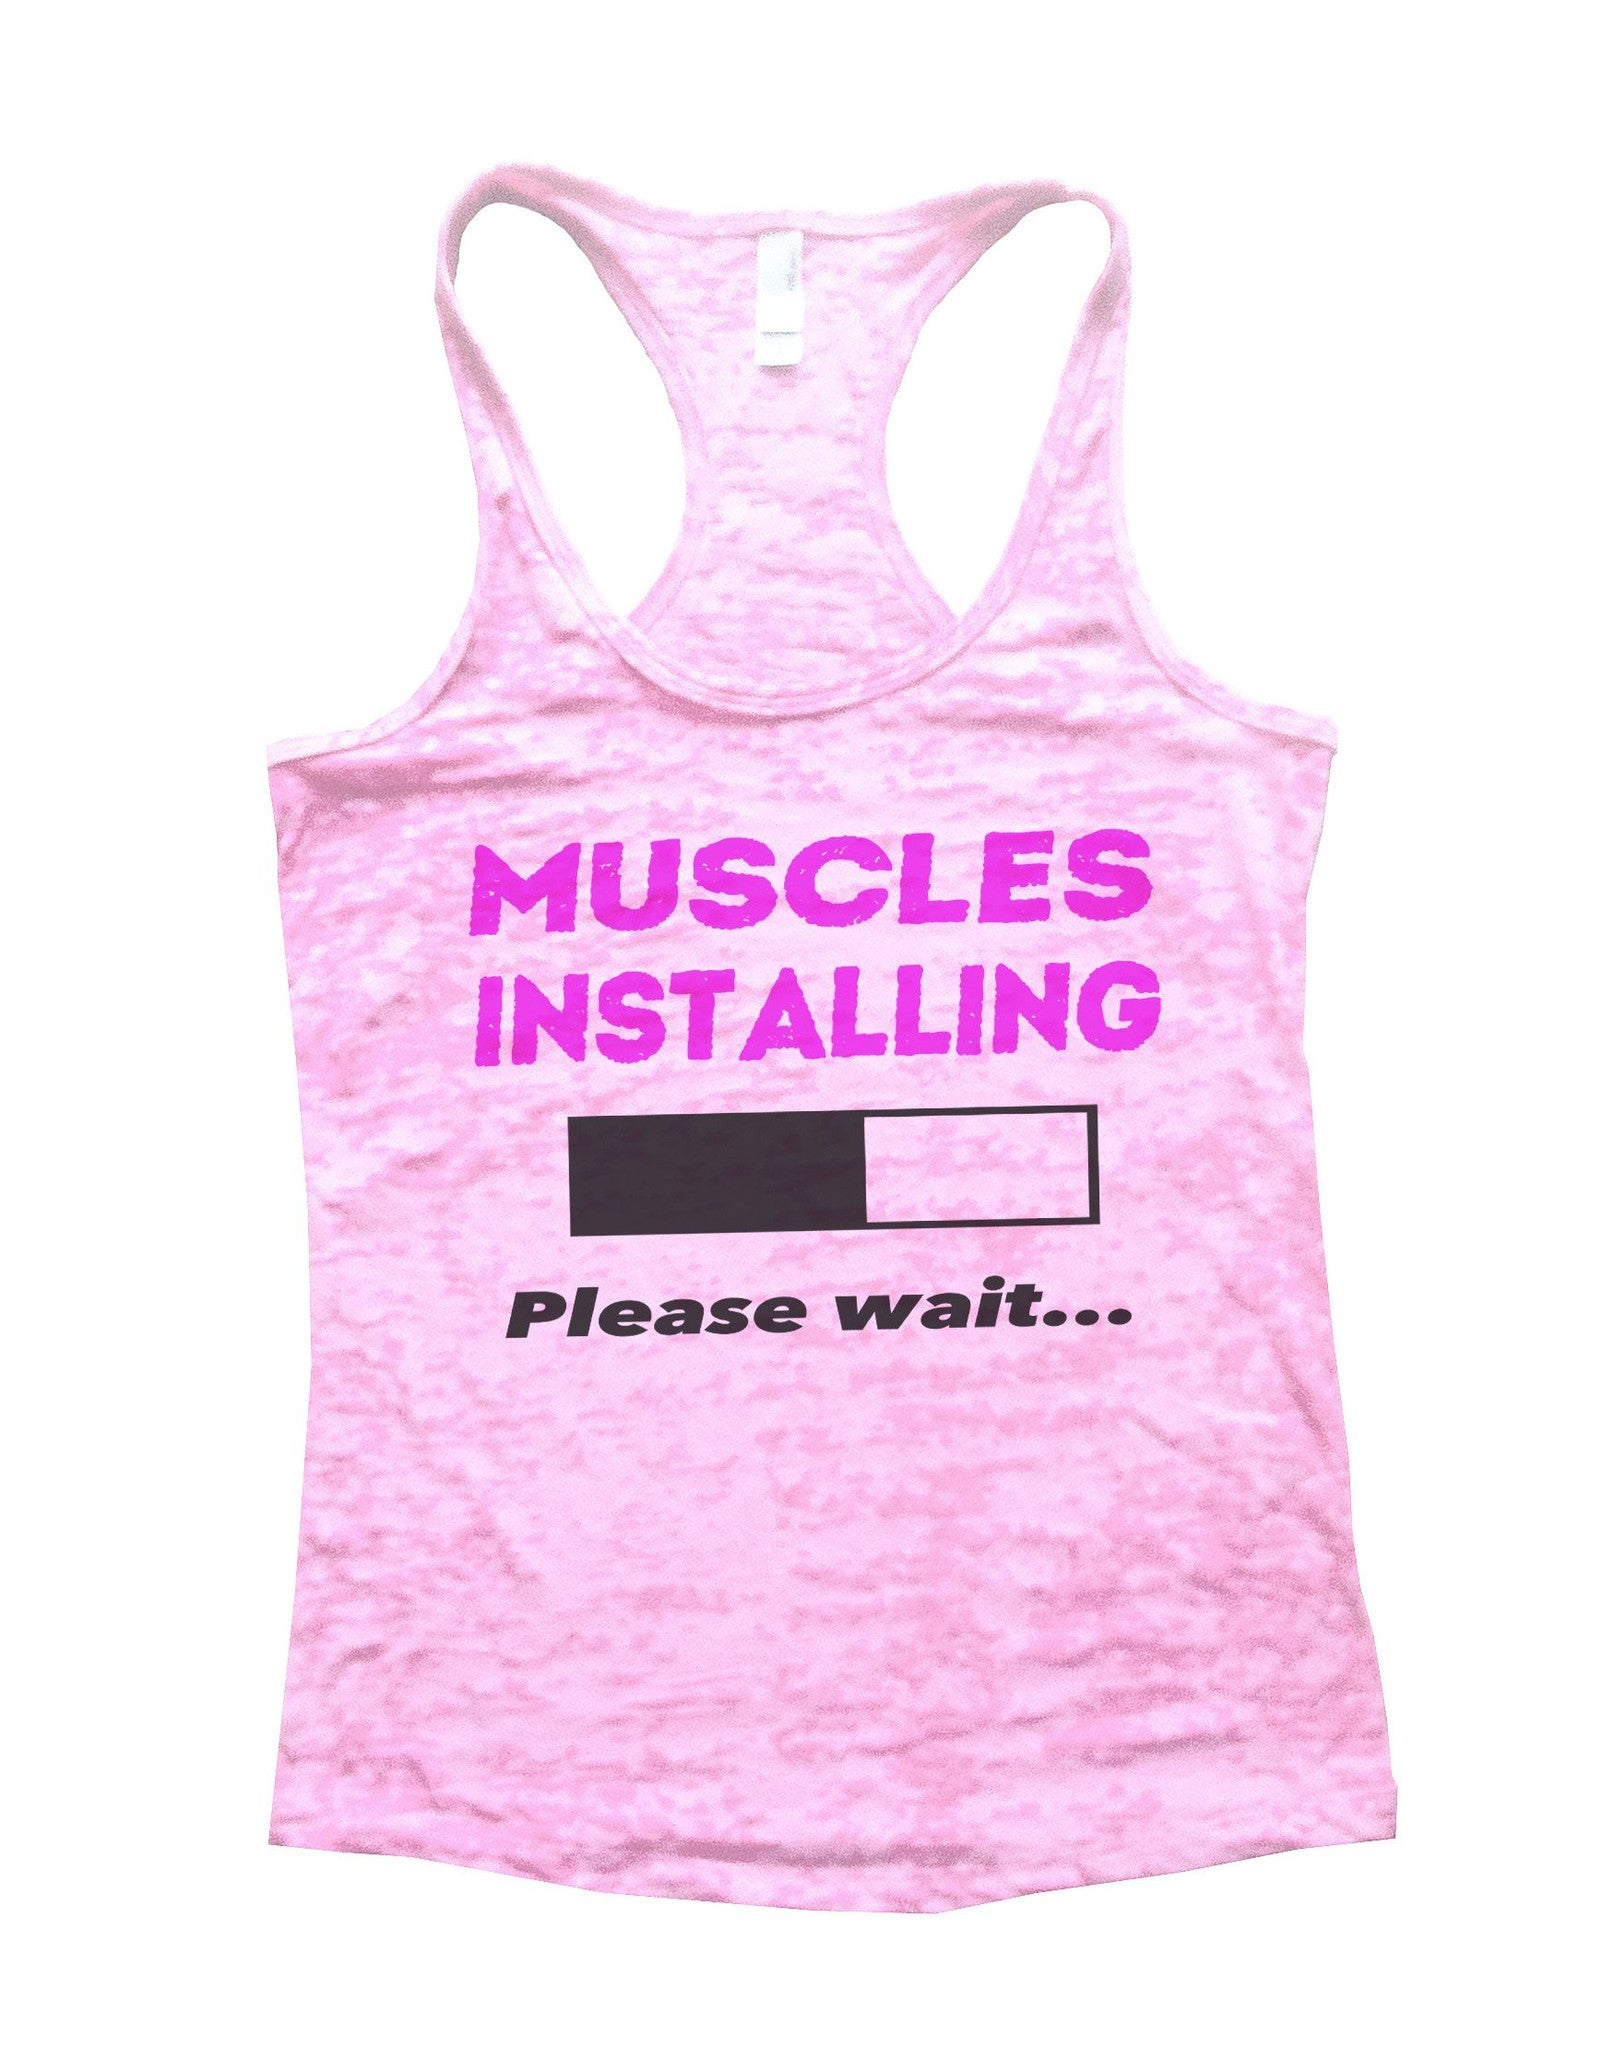 Muscles Installing Please Wait Burnout Tank Top By BurnoutTankTops.com - 762 - Funny Shirts Tank Tops Burnouts and Triblends  - 1